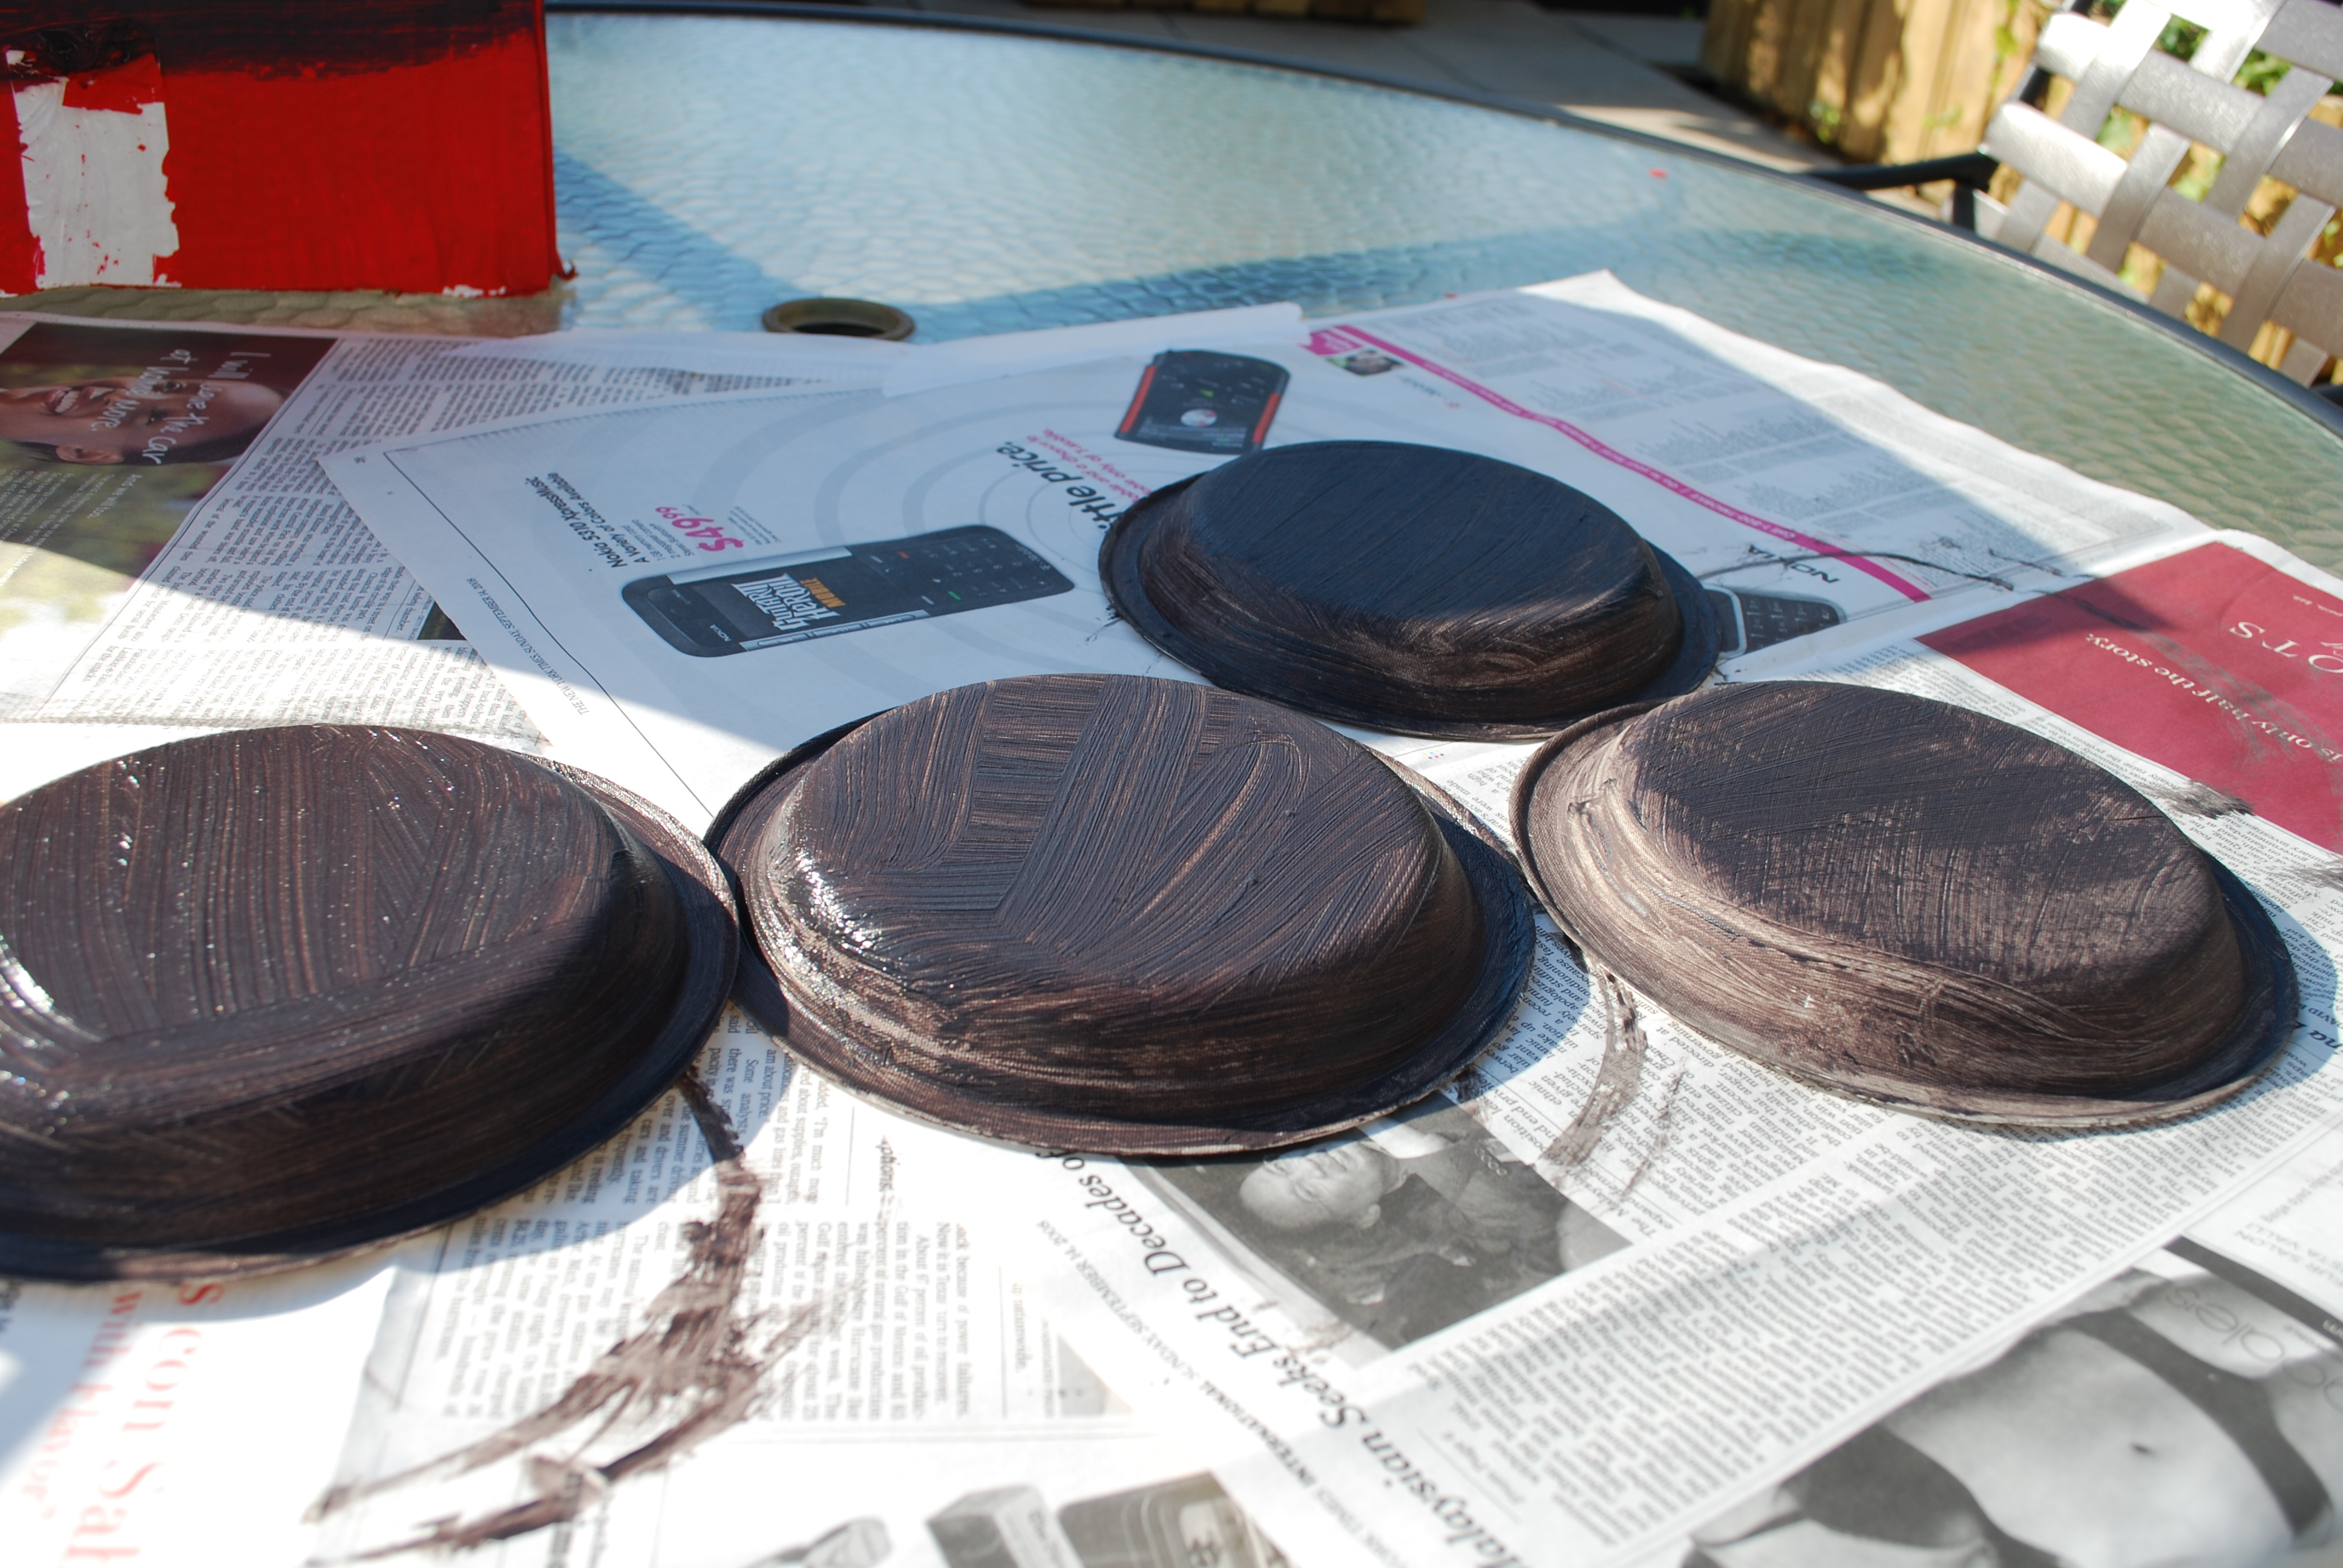 Allow all four plates to dry completely.